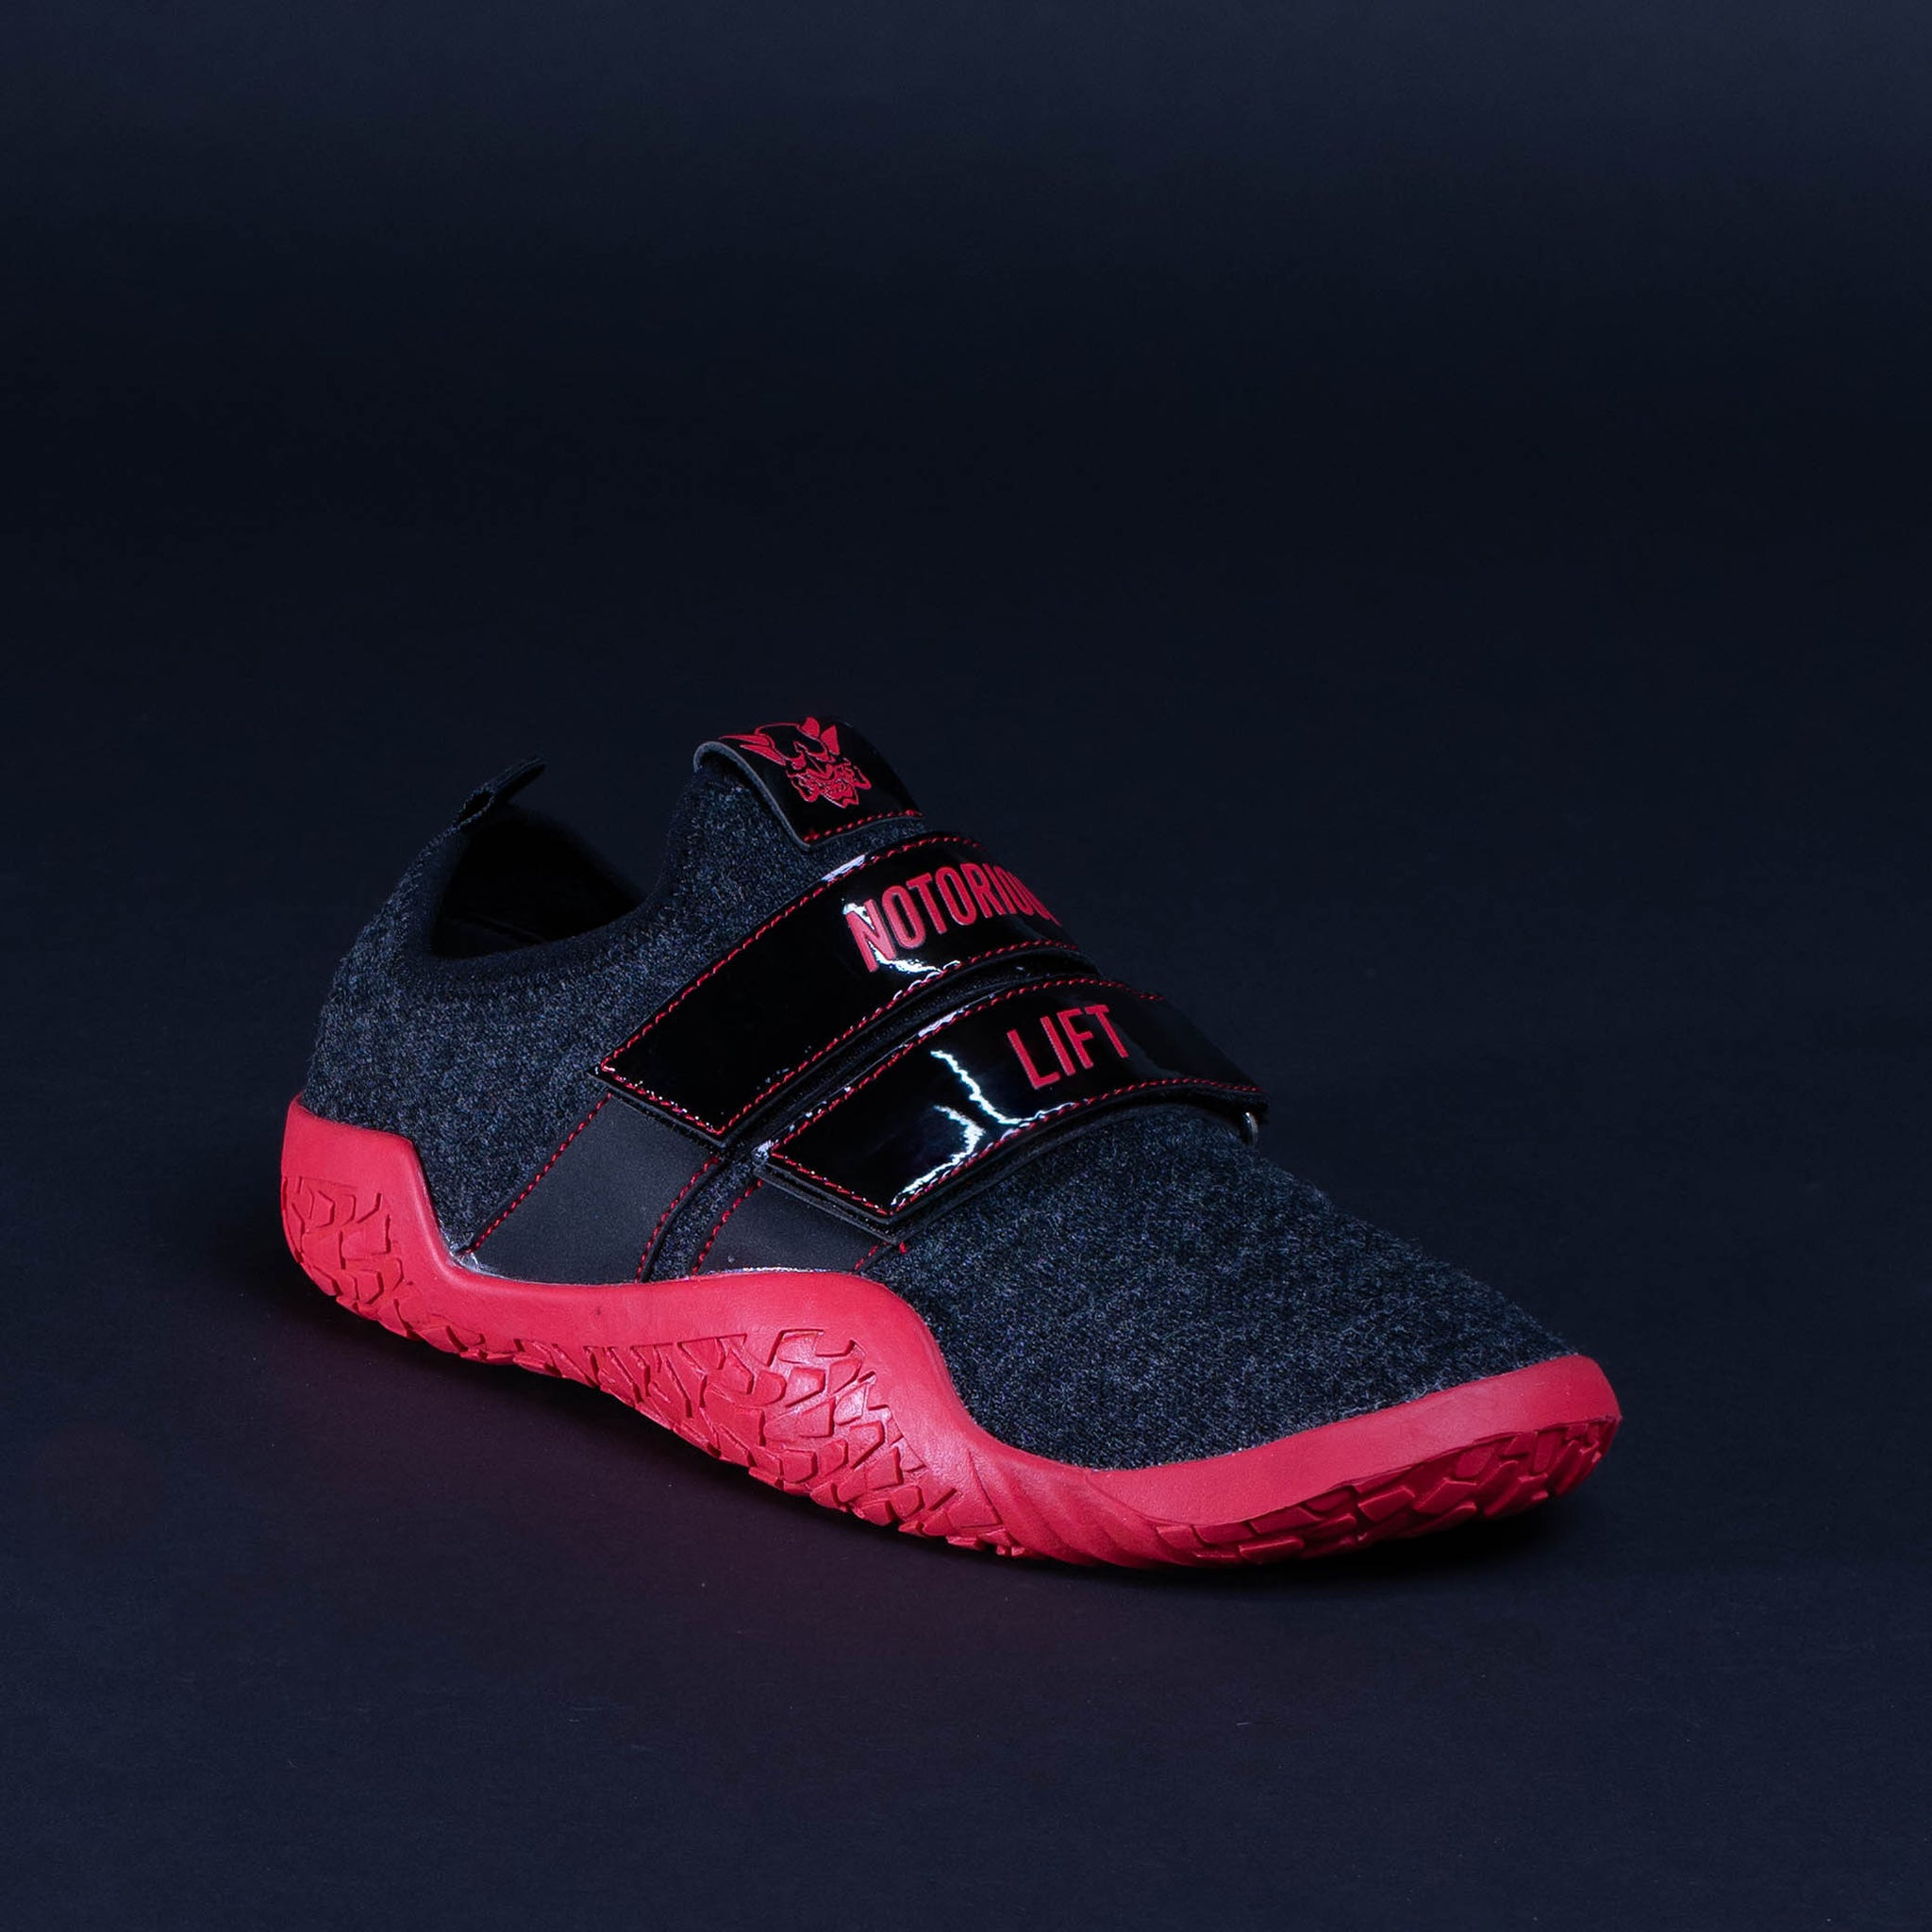 SUMO SOLE GEN 2: BLACK/RED EDITION